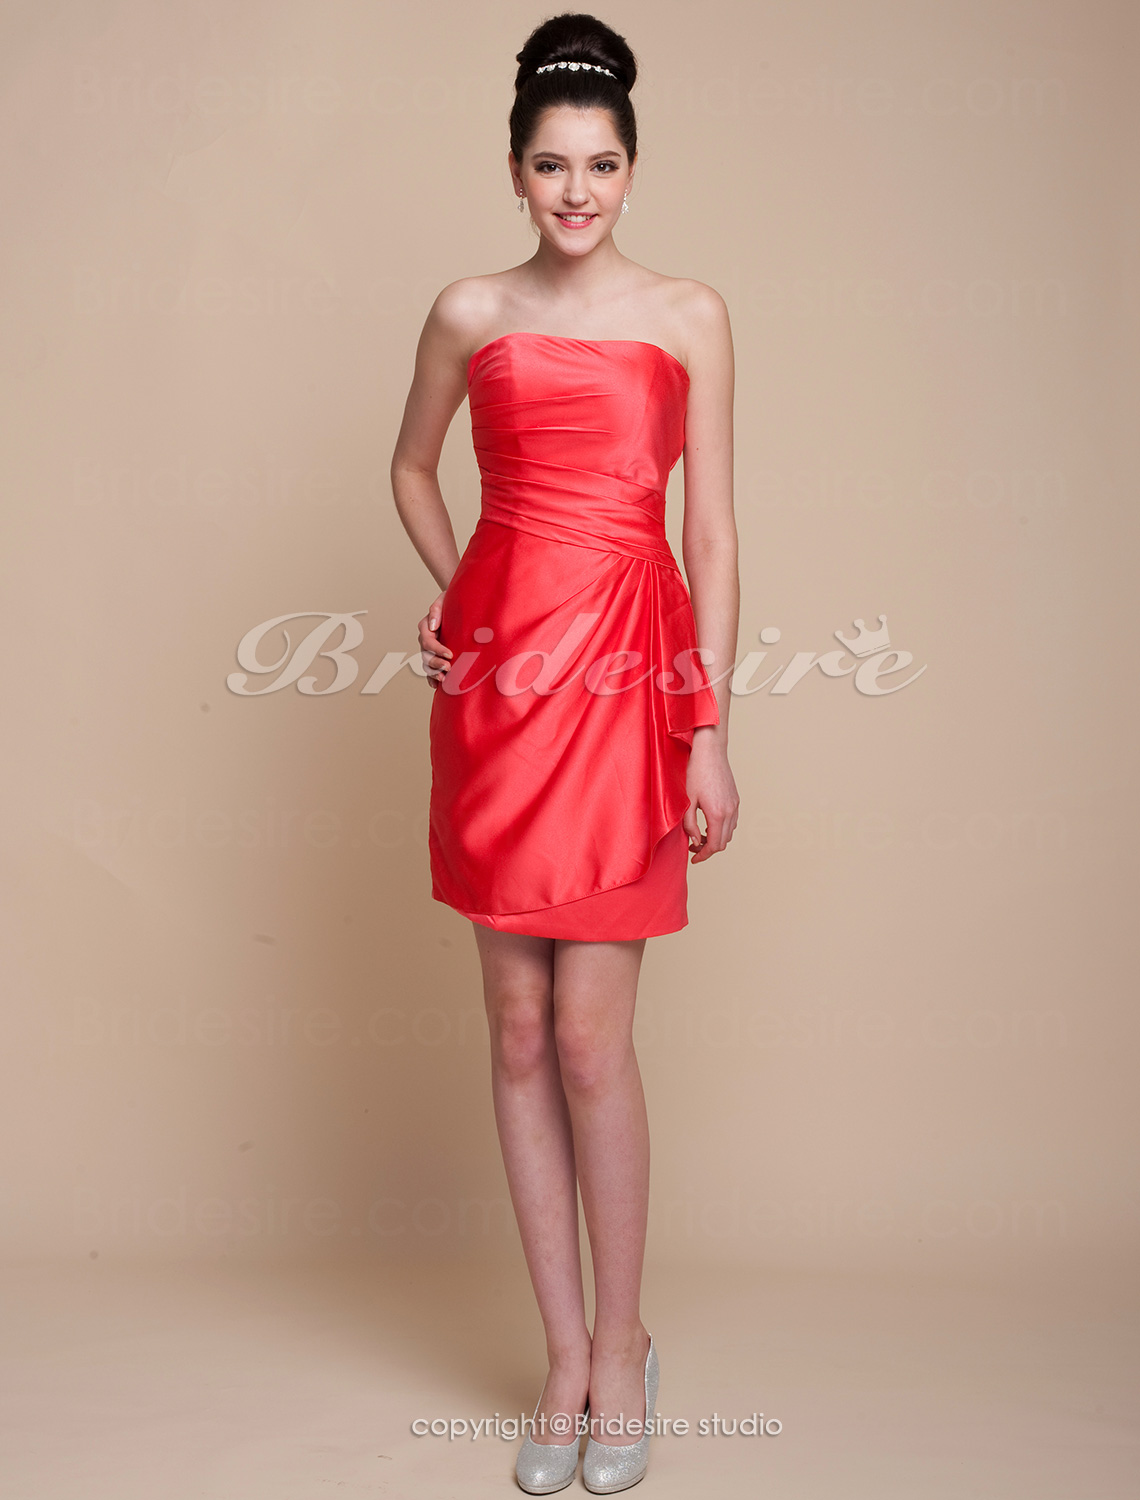 Sheath/ Column Knee-length Satin Side-Draped Strapless Bridesmaid Dress